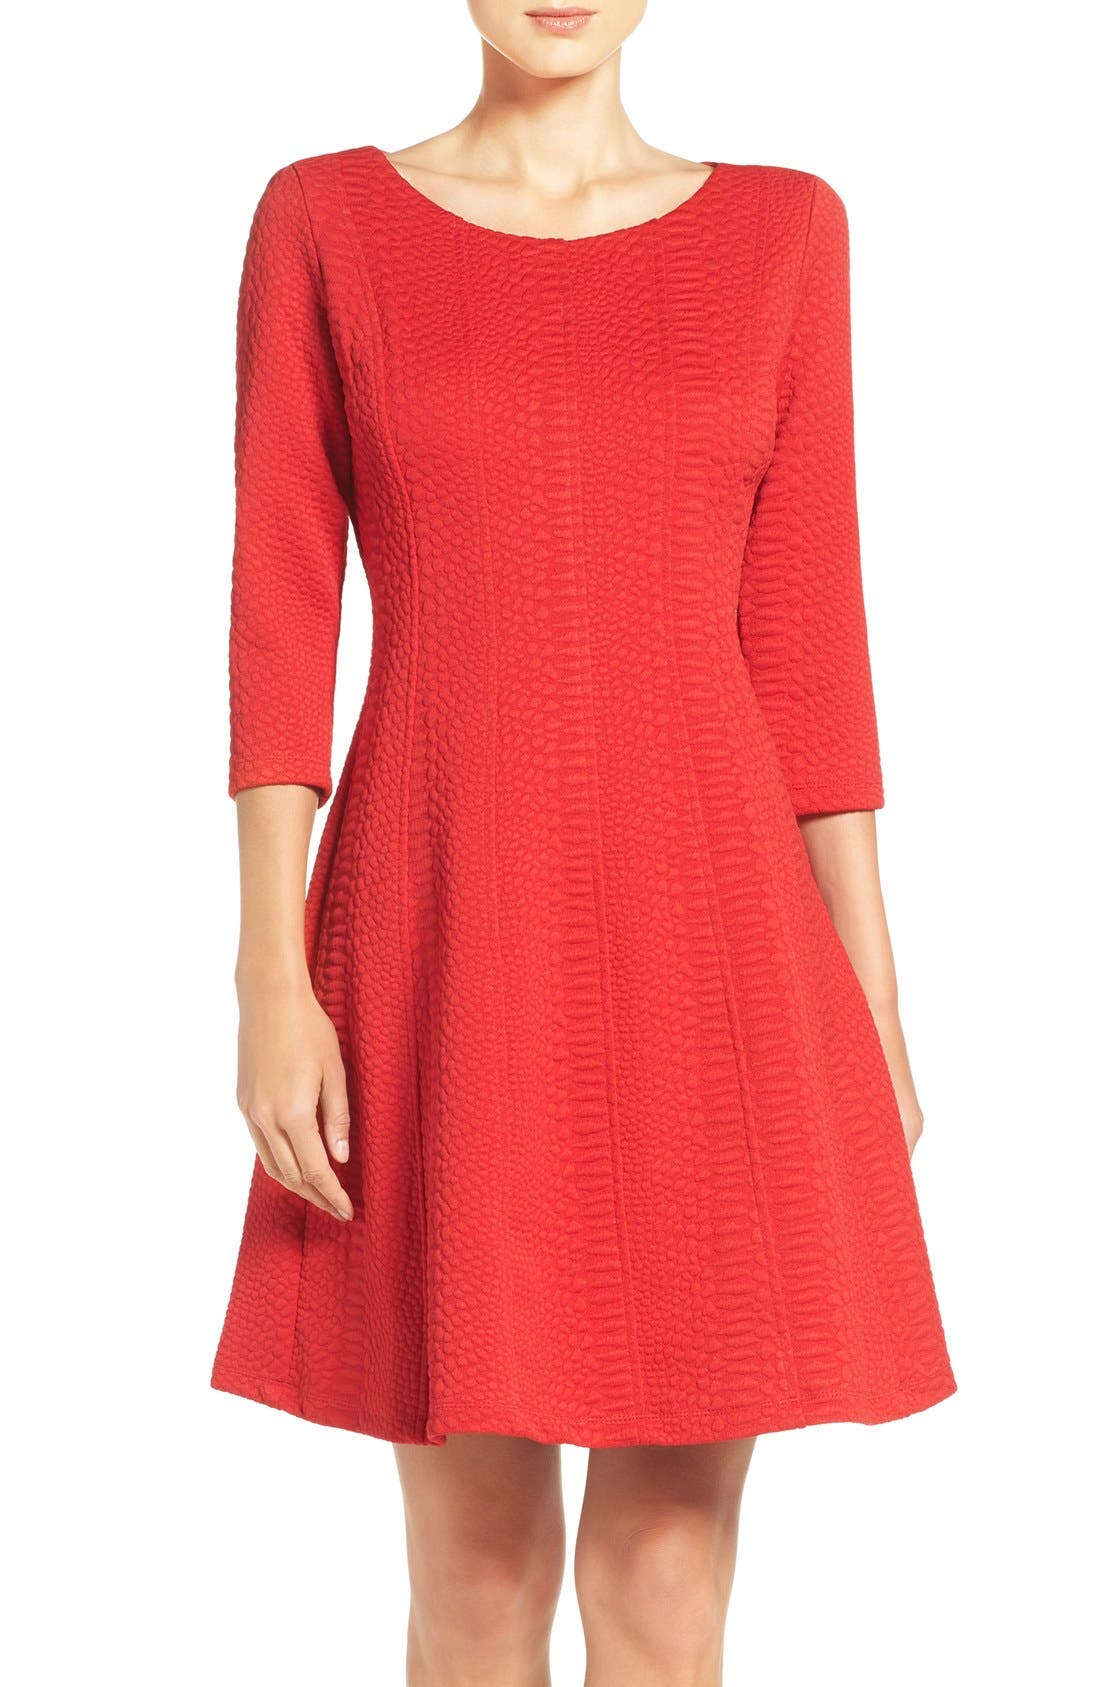 Jacquard Knit Fit & Flare Dress,                         Main,                         color, Red